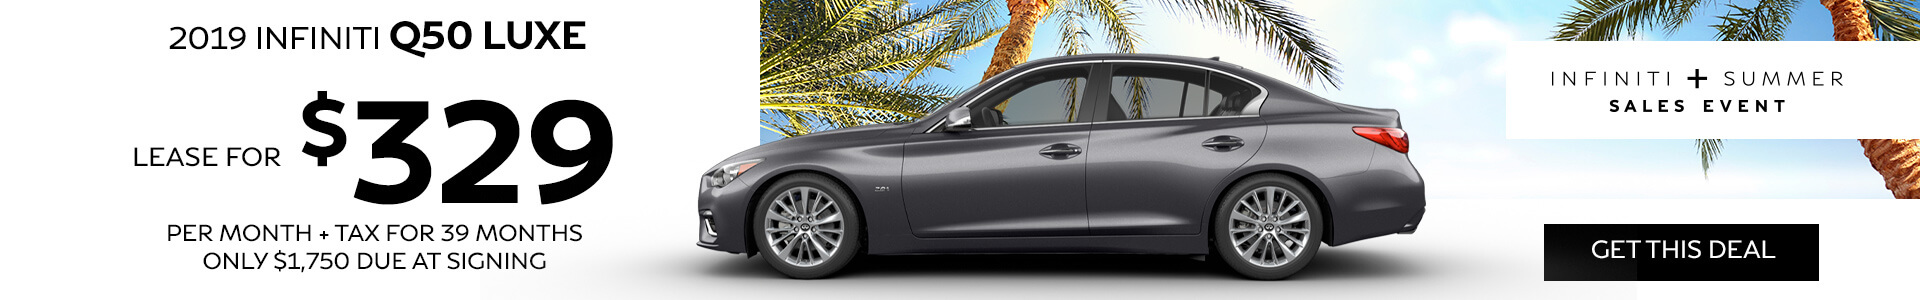 Q50 LUXE - Lease for $329